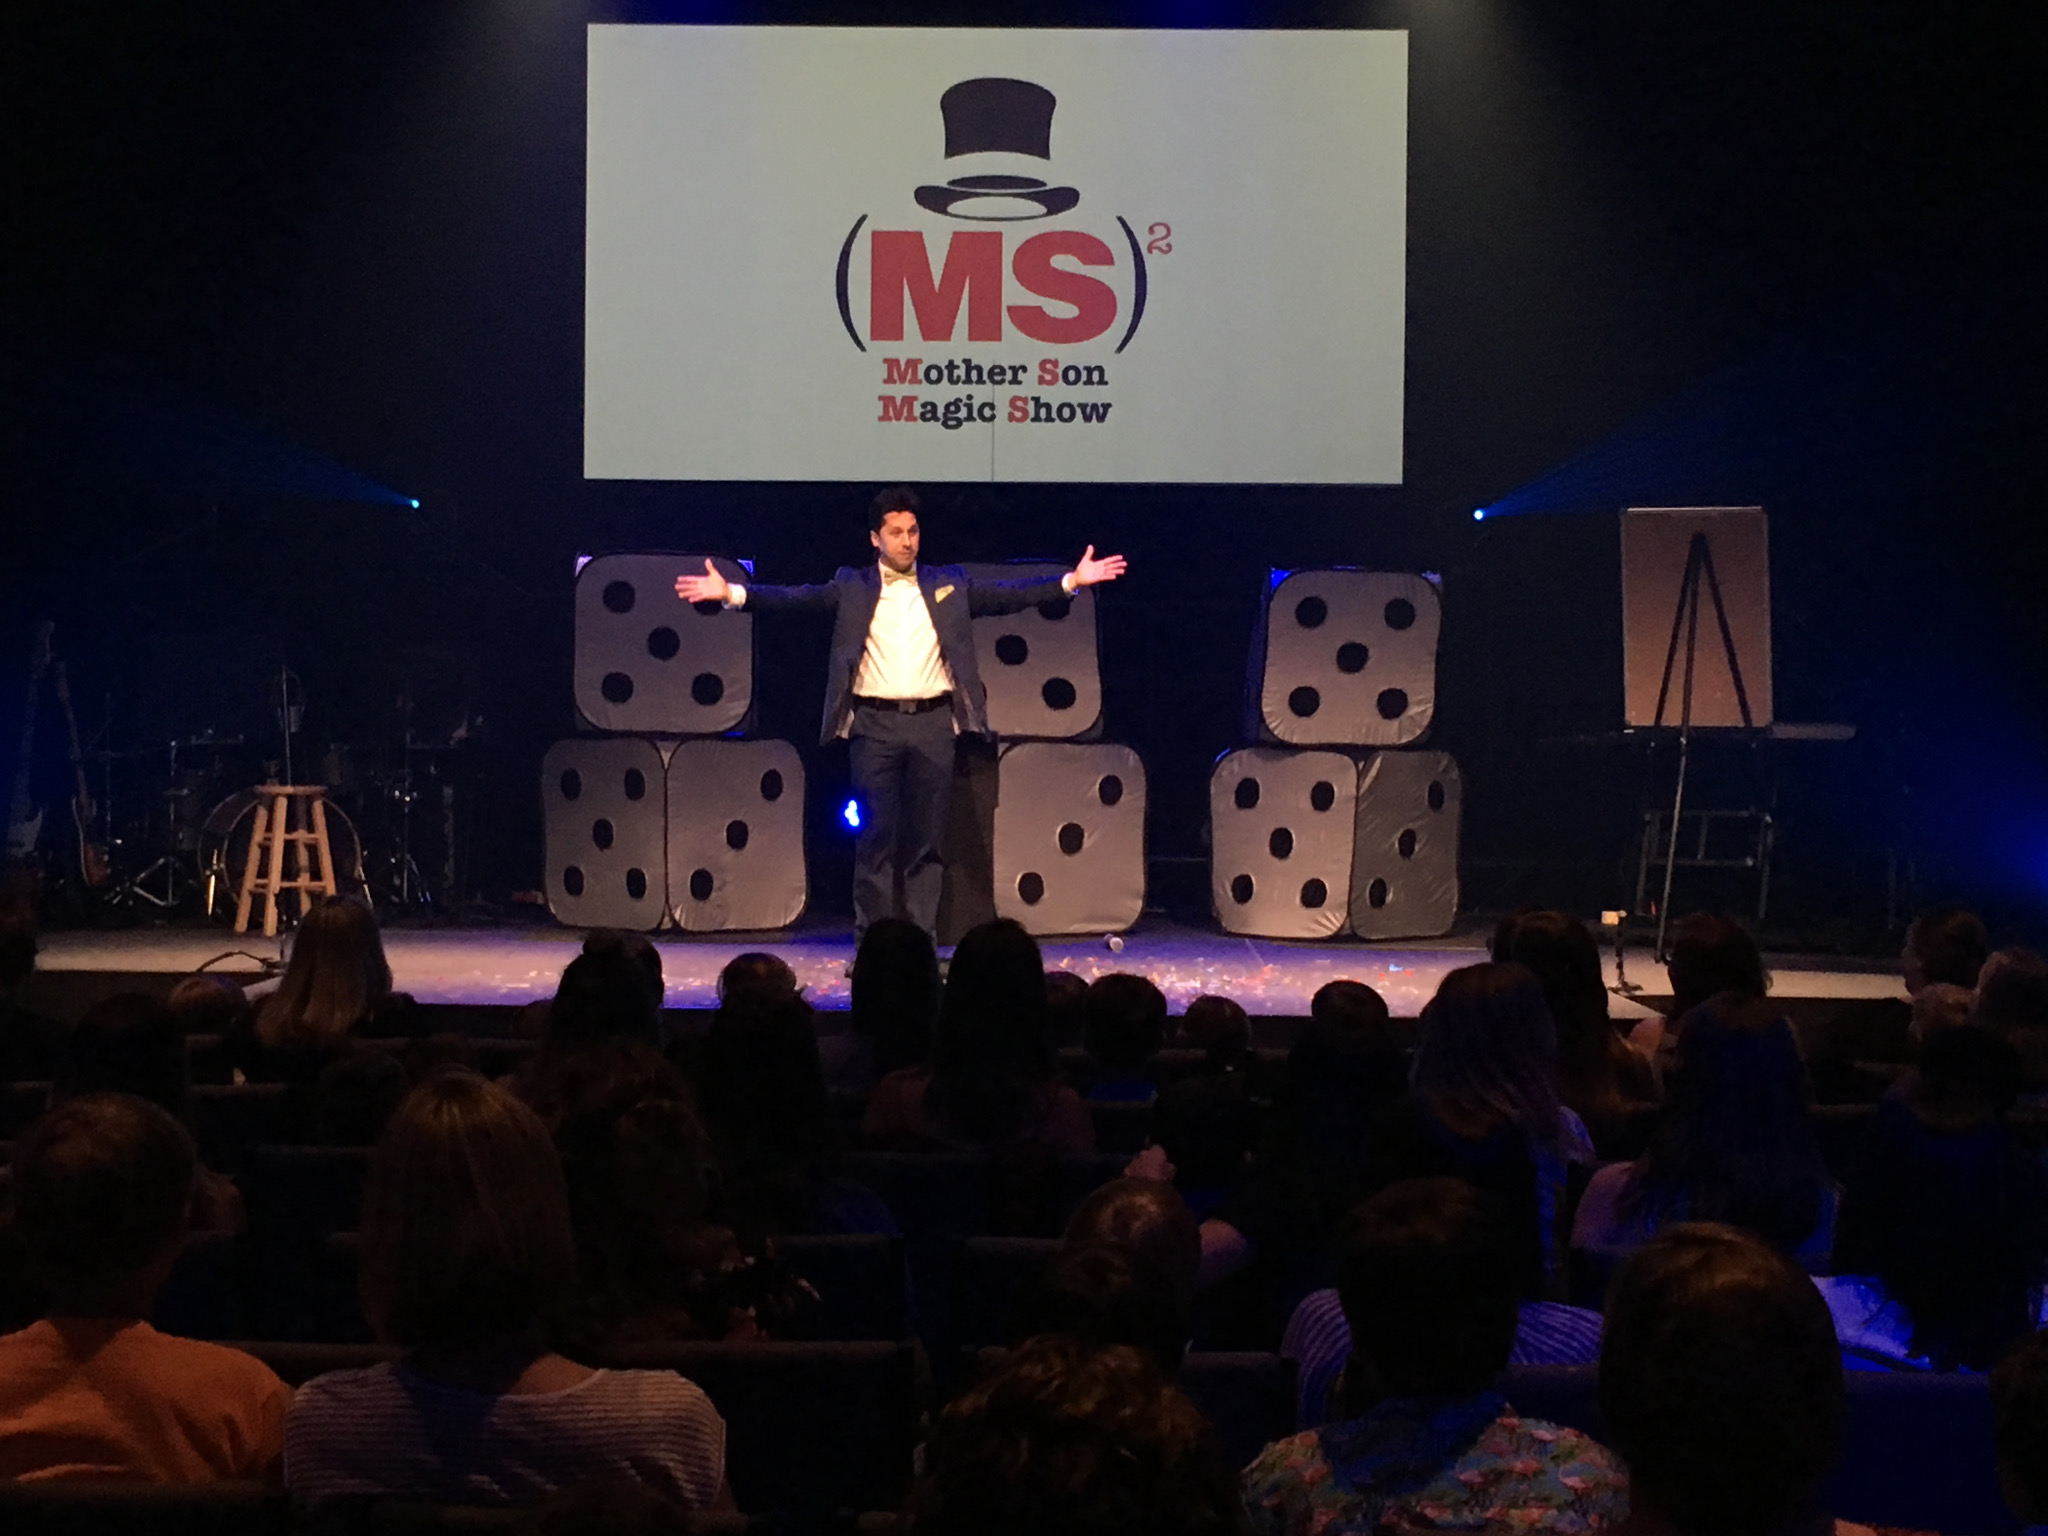 Mother-SonMagic Show - In 2018 we landed on a great event for moms and sons. Michael Rosander gave us a night of laughter and magic and we hope to do it again in 2019. Look for details in the spring.